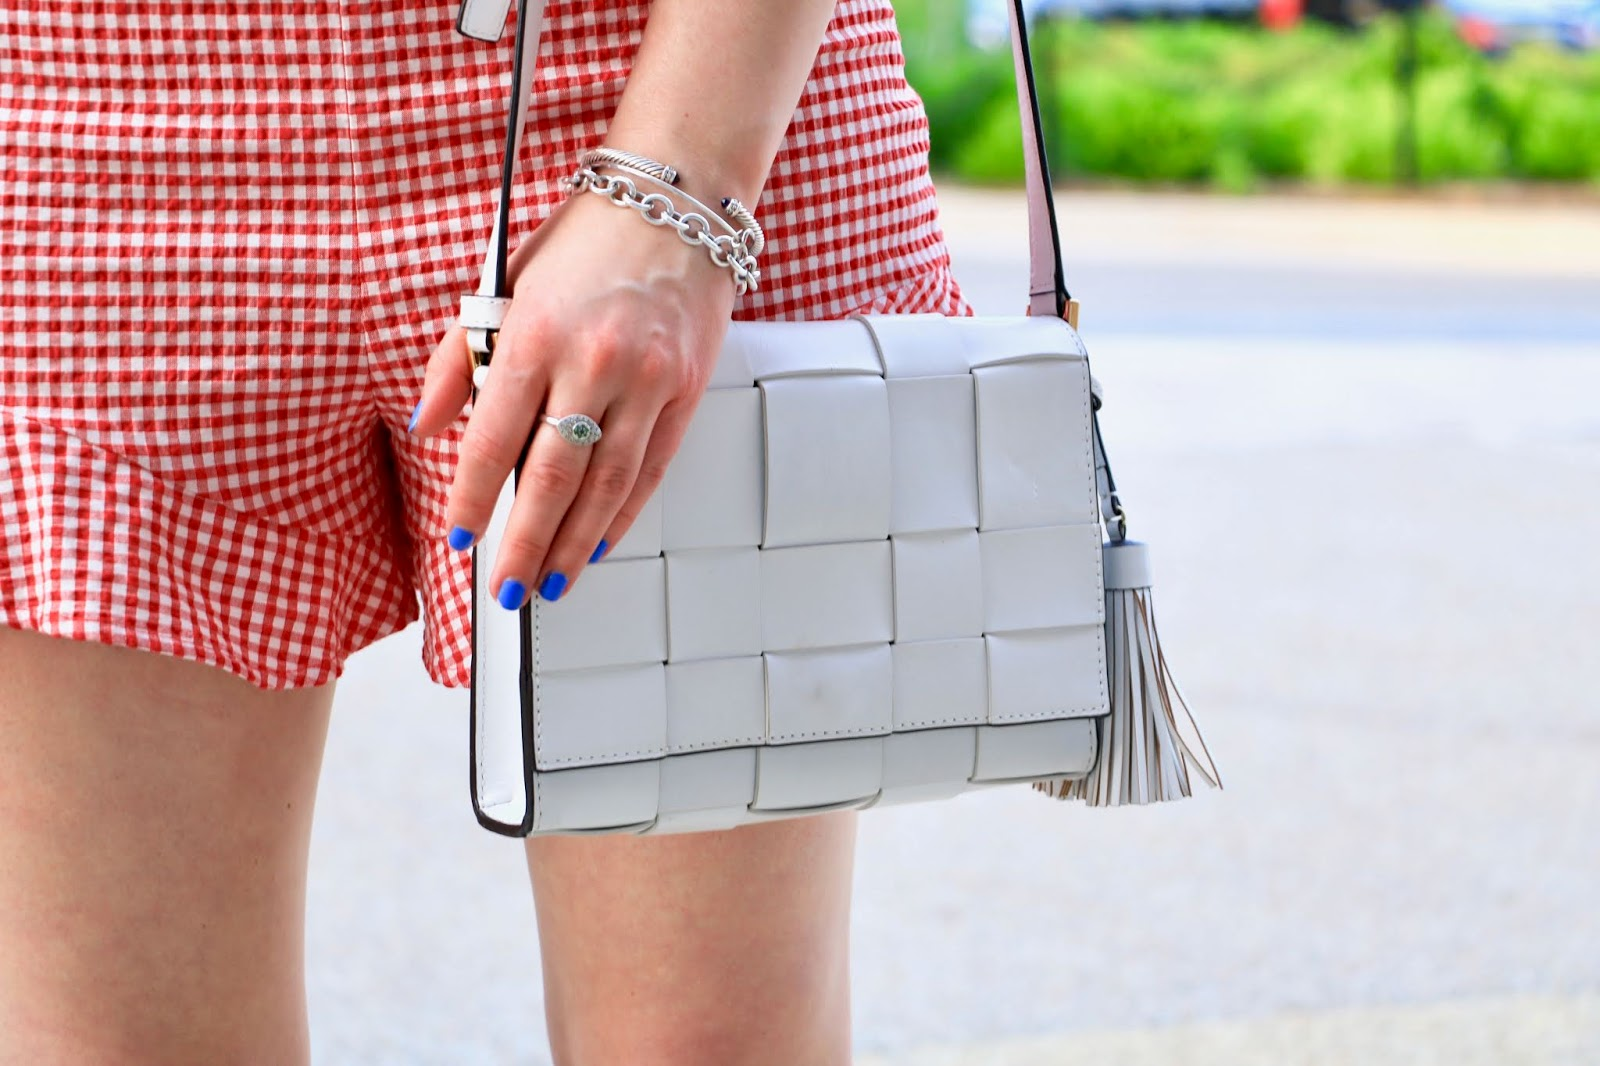 Nyc fashion blogger Kathleen Harper's white weave Michael Kors purse